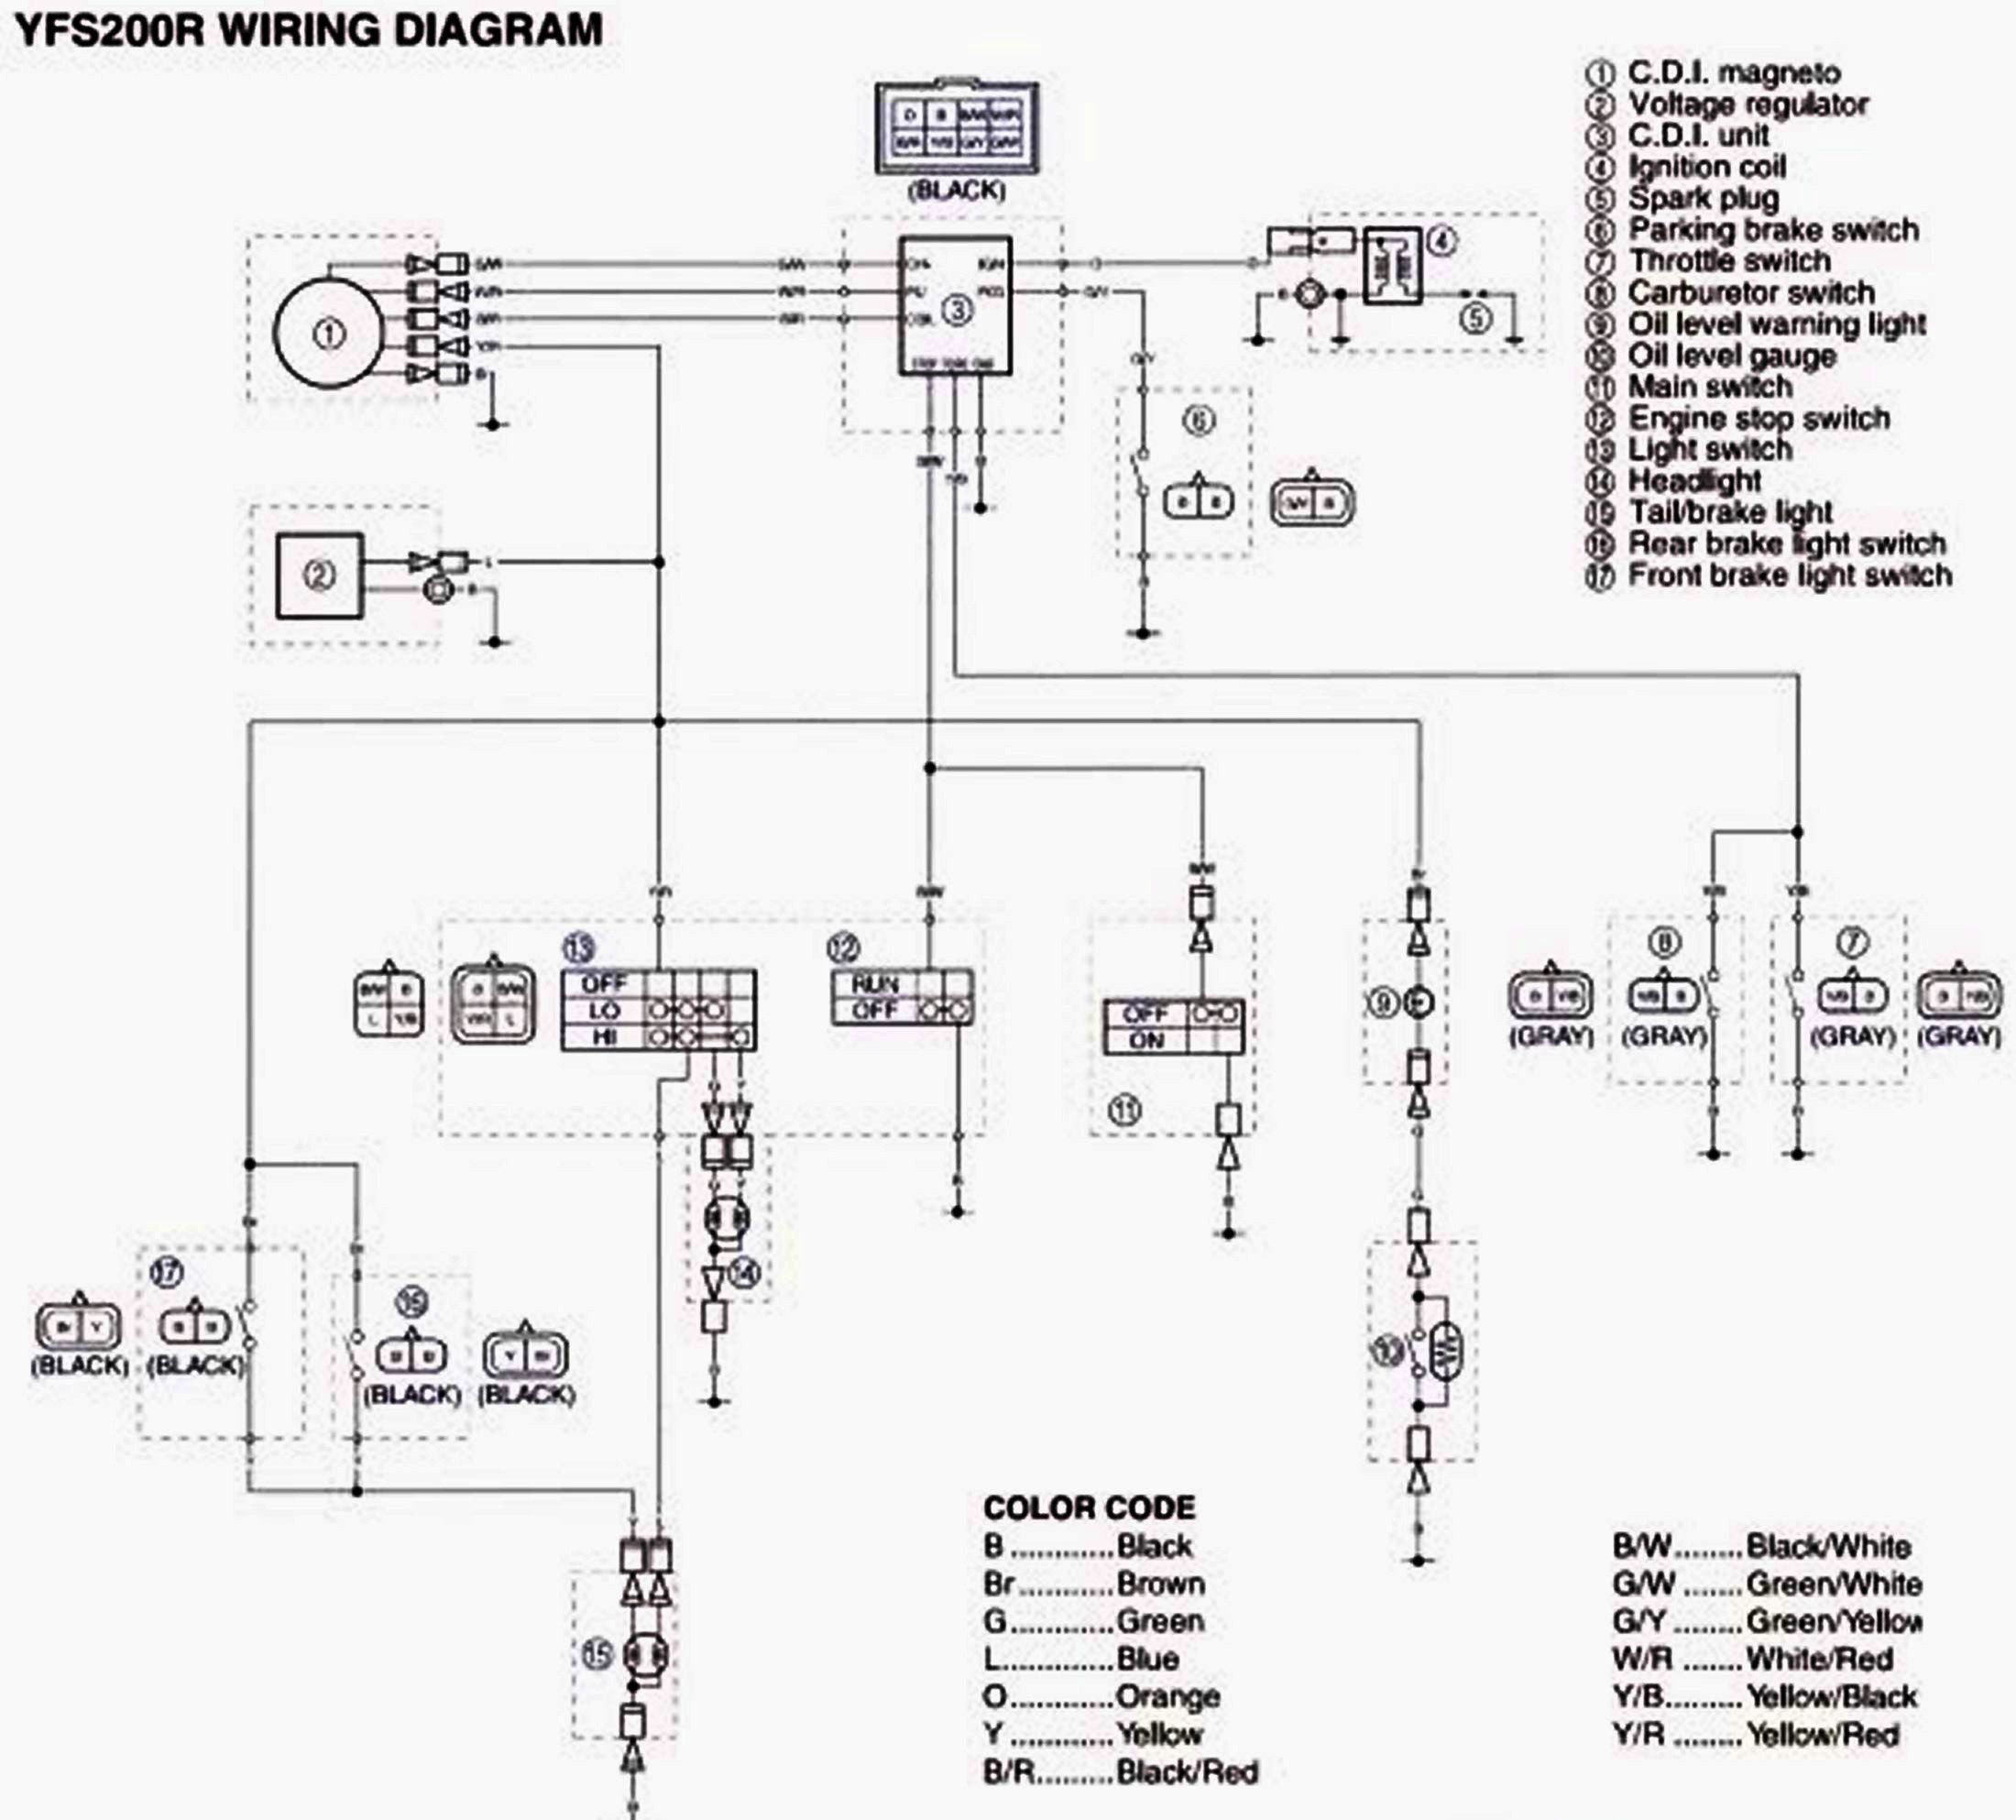 stock wiring diagrams blasterforum com yamaha blaster cdi yamaha blaster wiring harness diagram